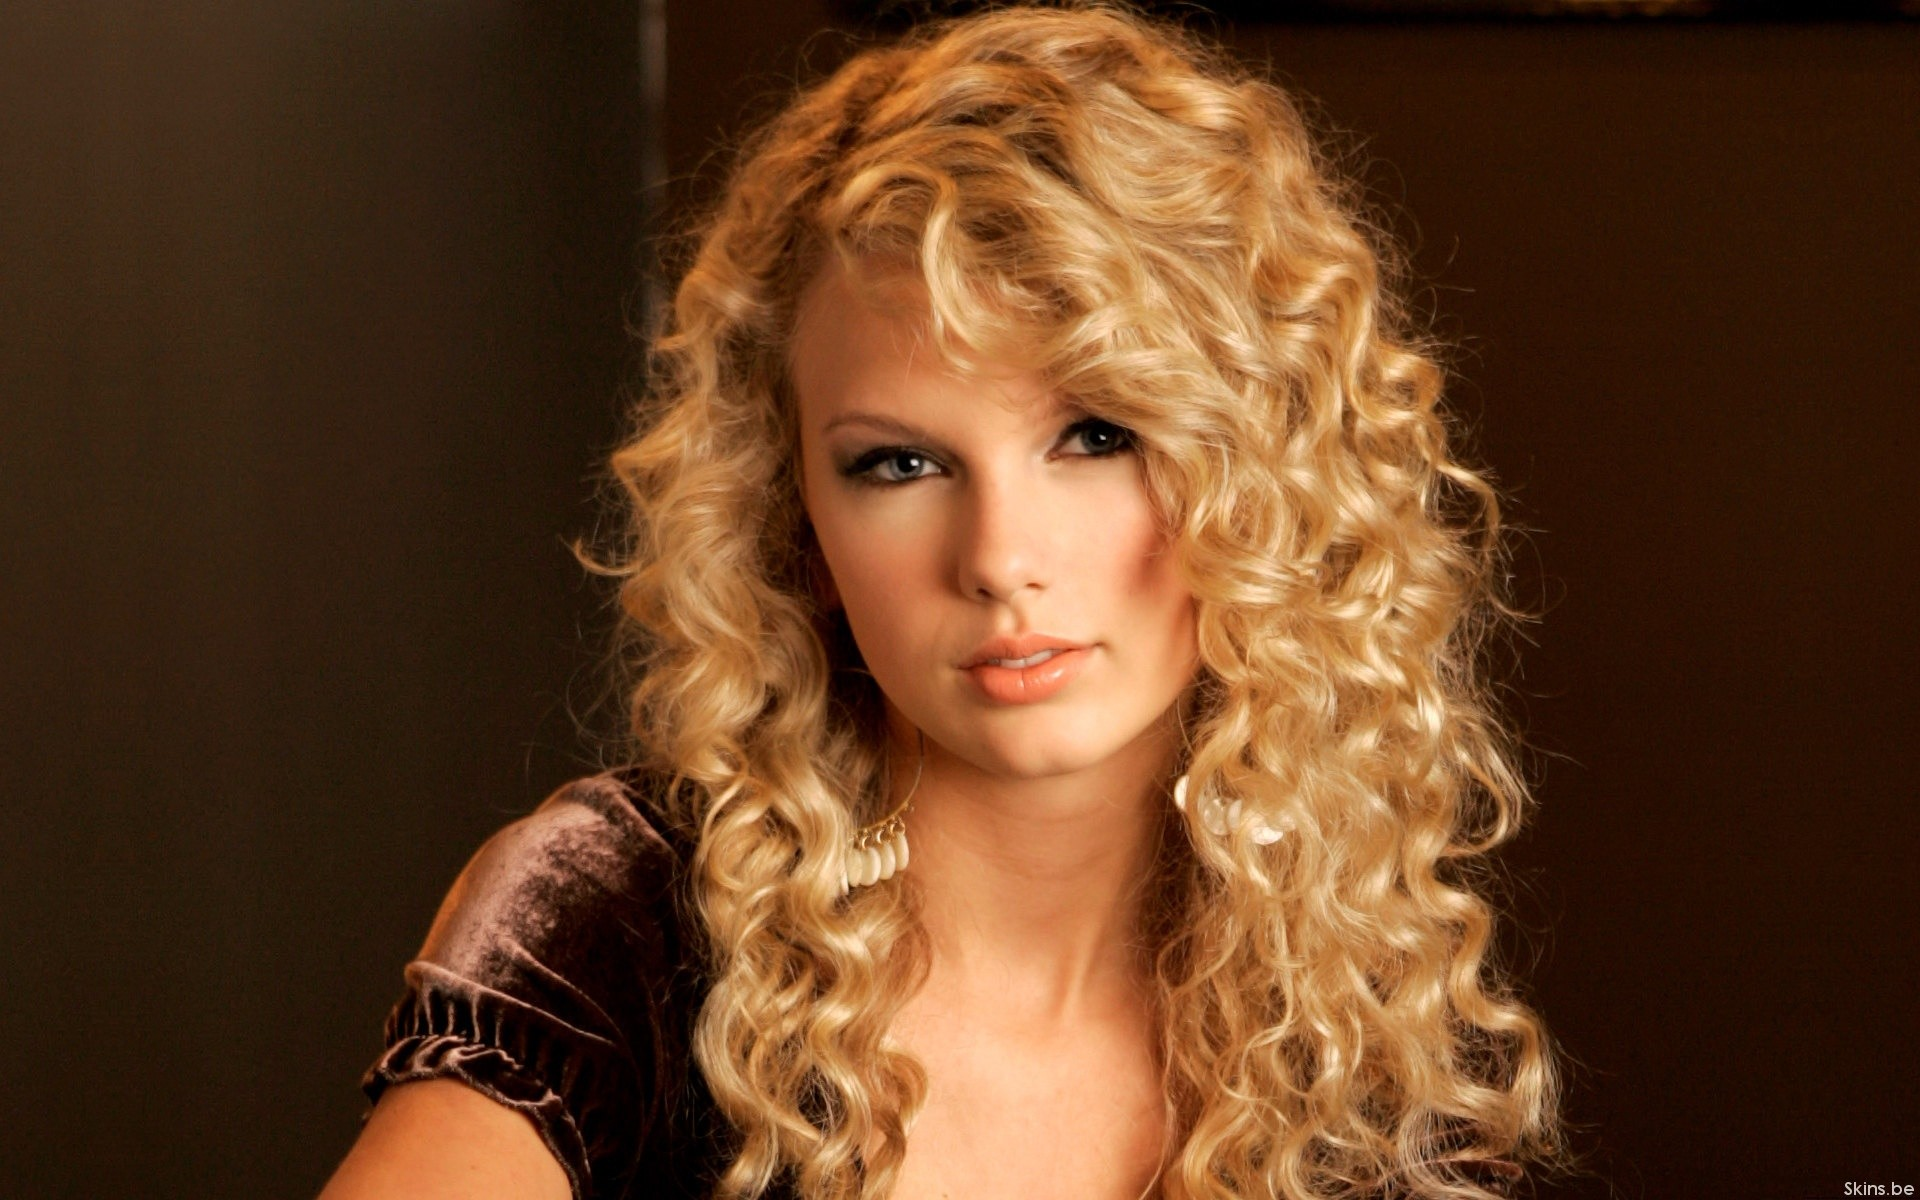 El rostro de Taylor Swift - 1920x1200